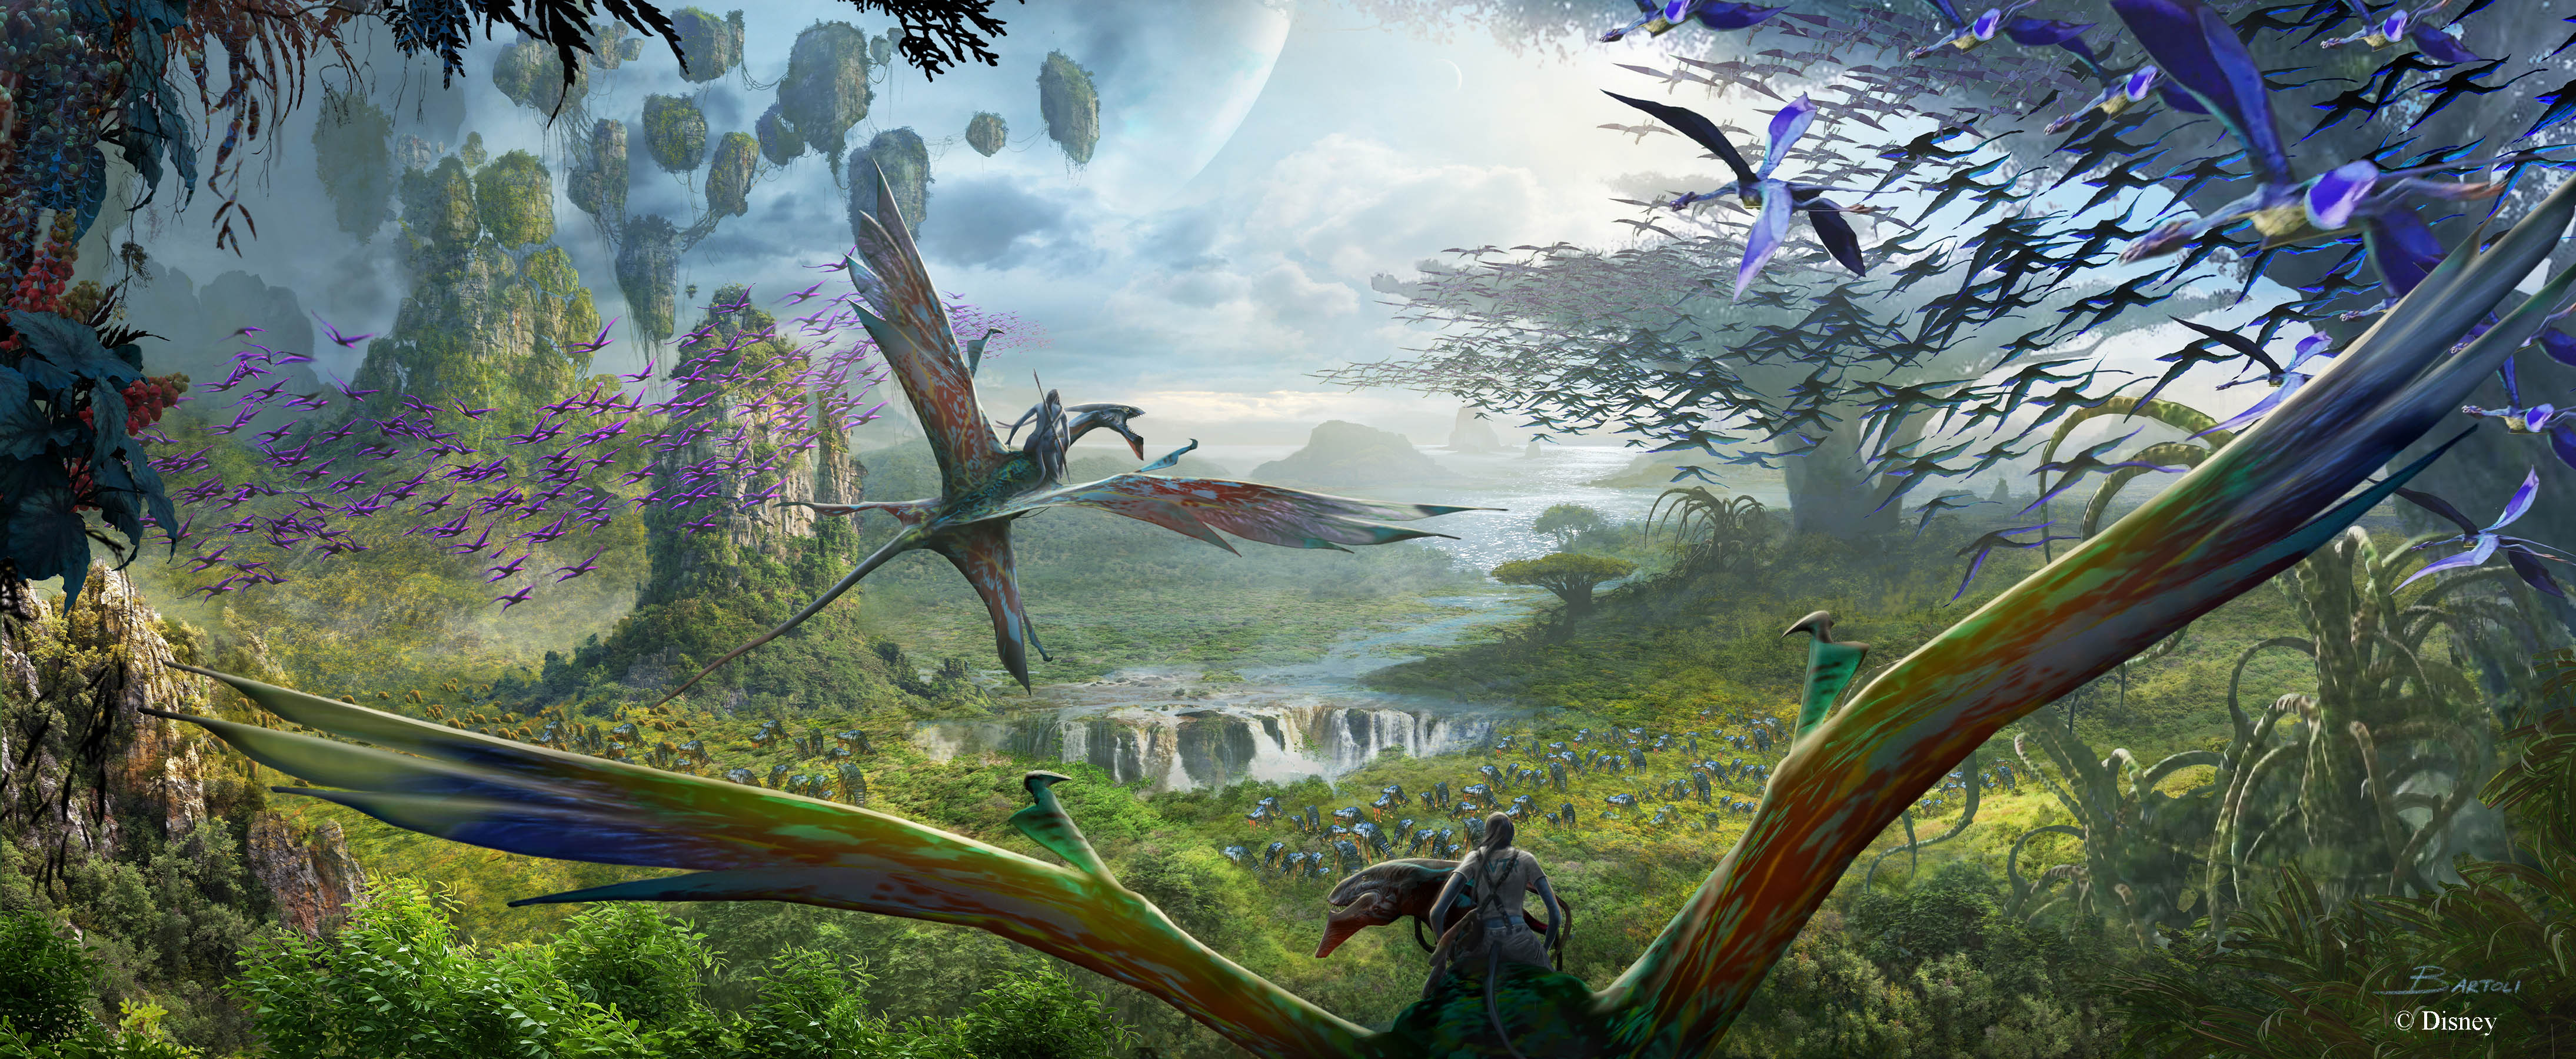 Avatar Flight of Passage concept art